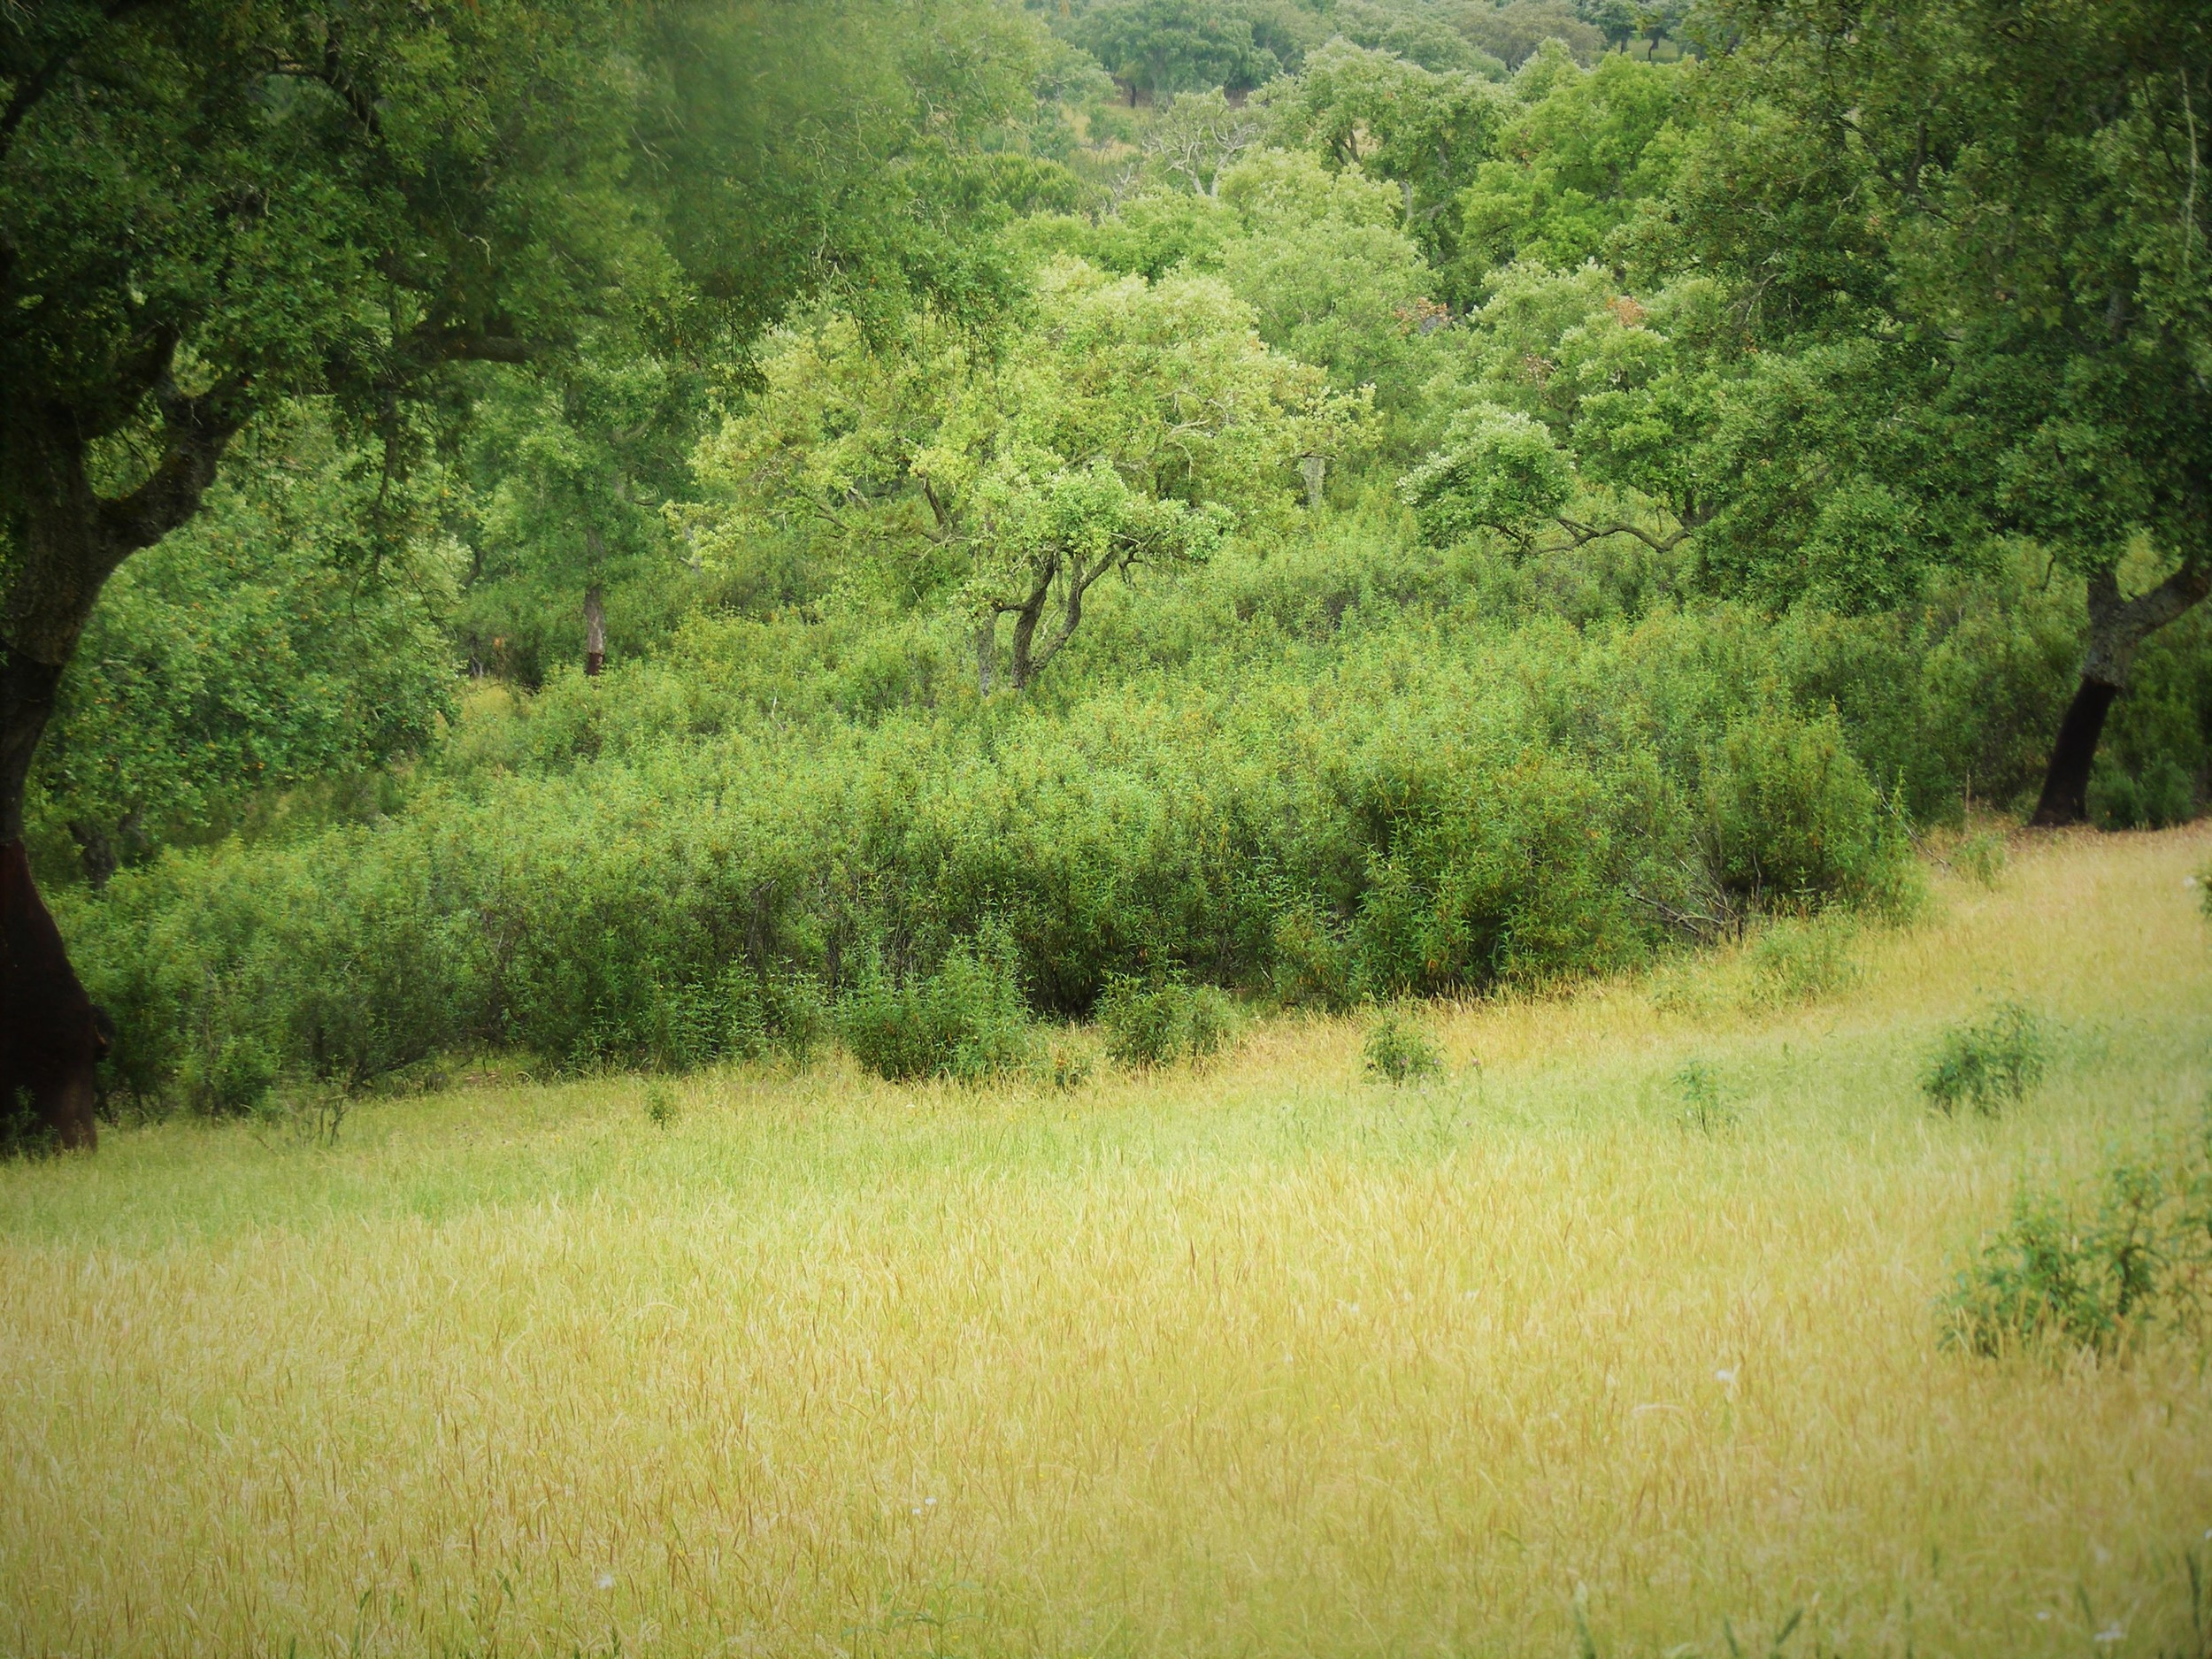 Woody Plant Dominance in Grasslands Alters Ecosystem Dynamics